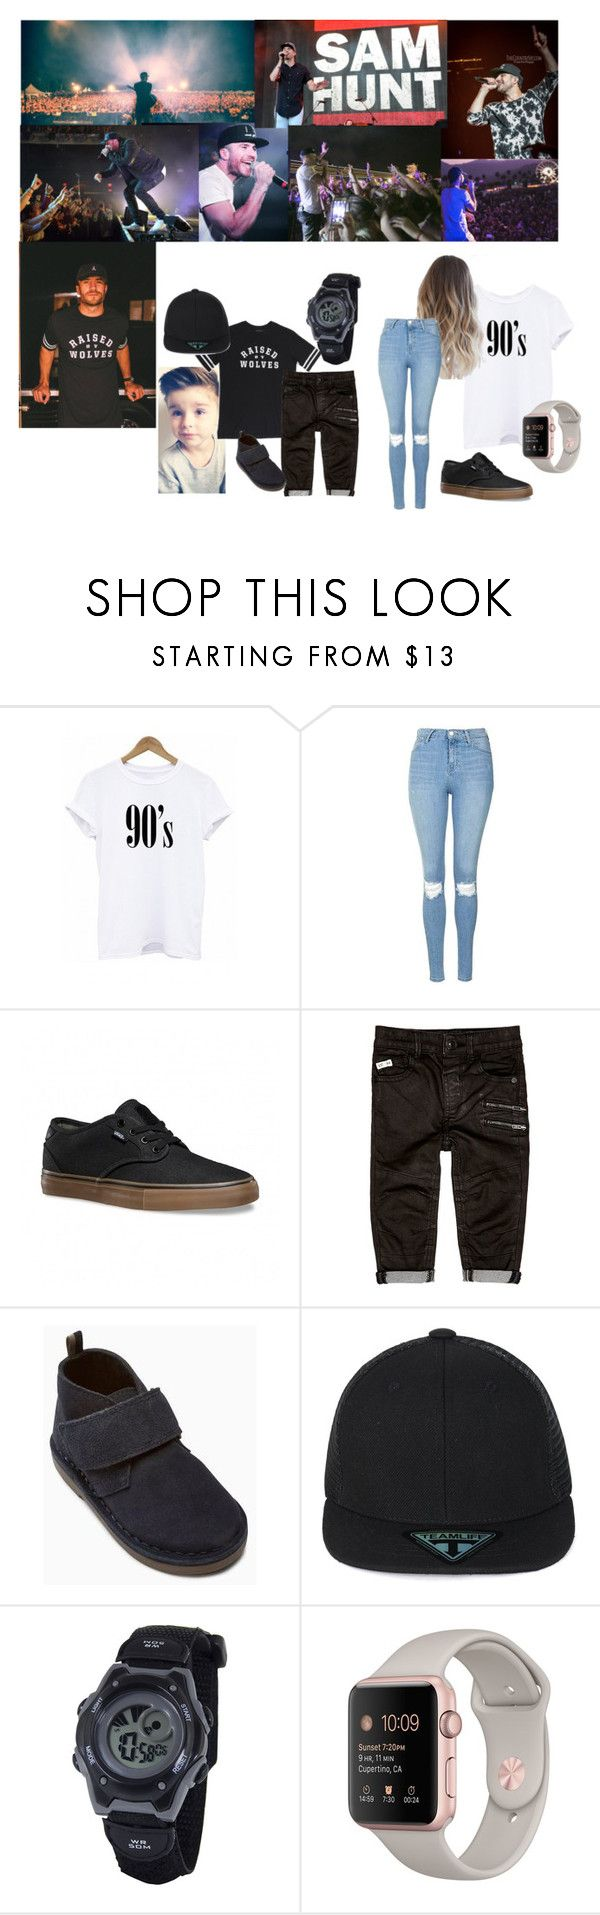 """sam hunt consert"" by jessie098 on Polyvore featuring Topshop and Vans"